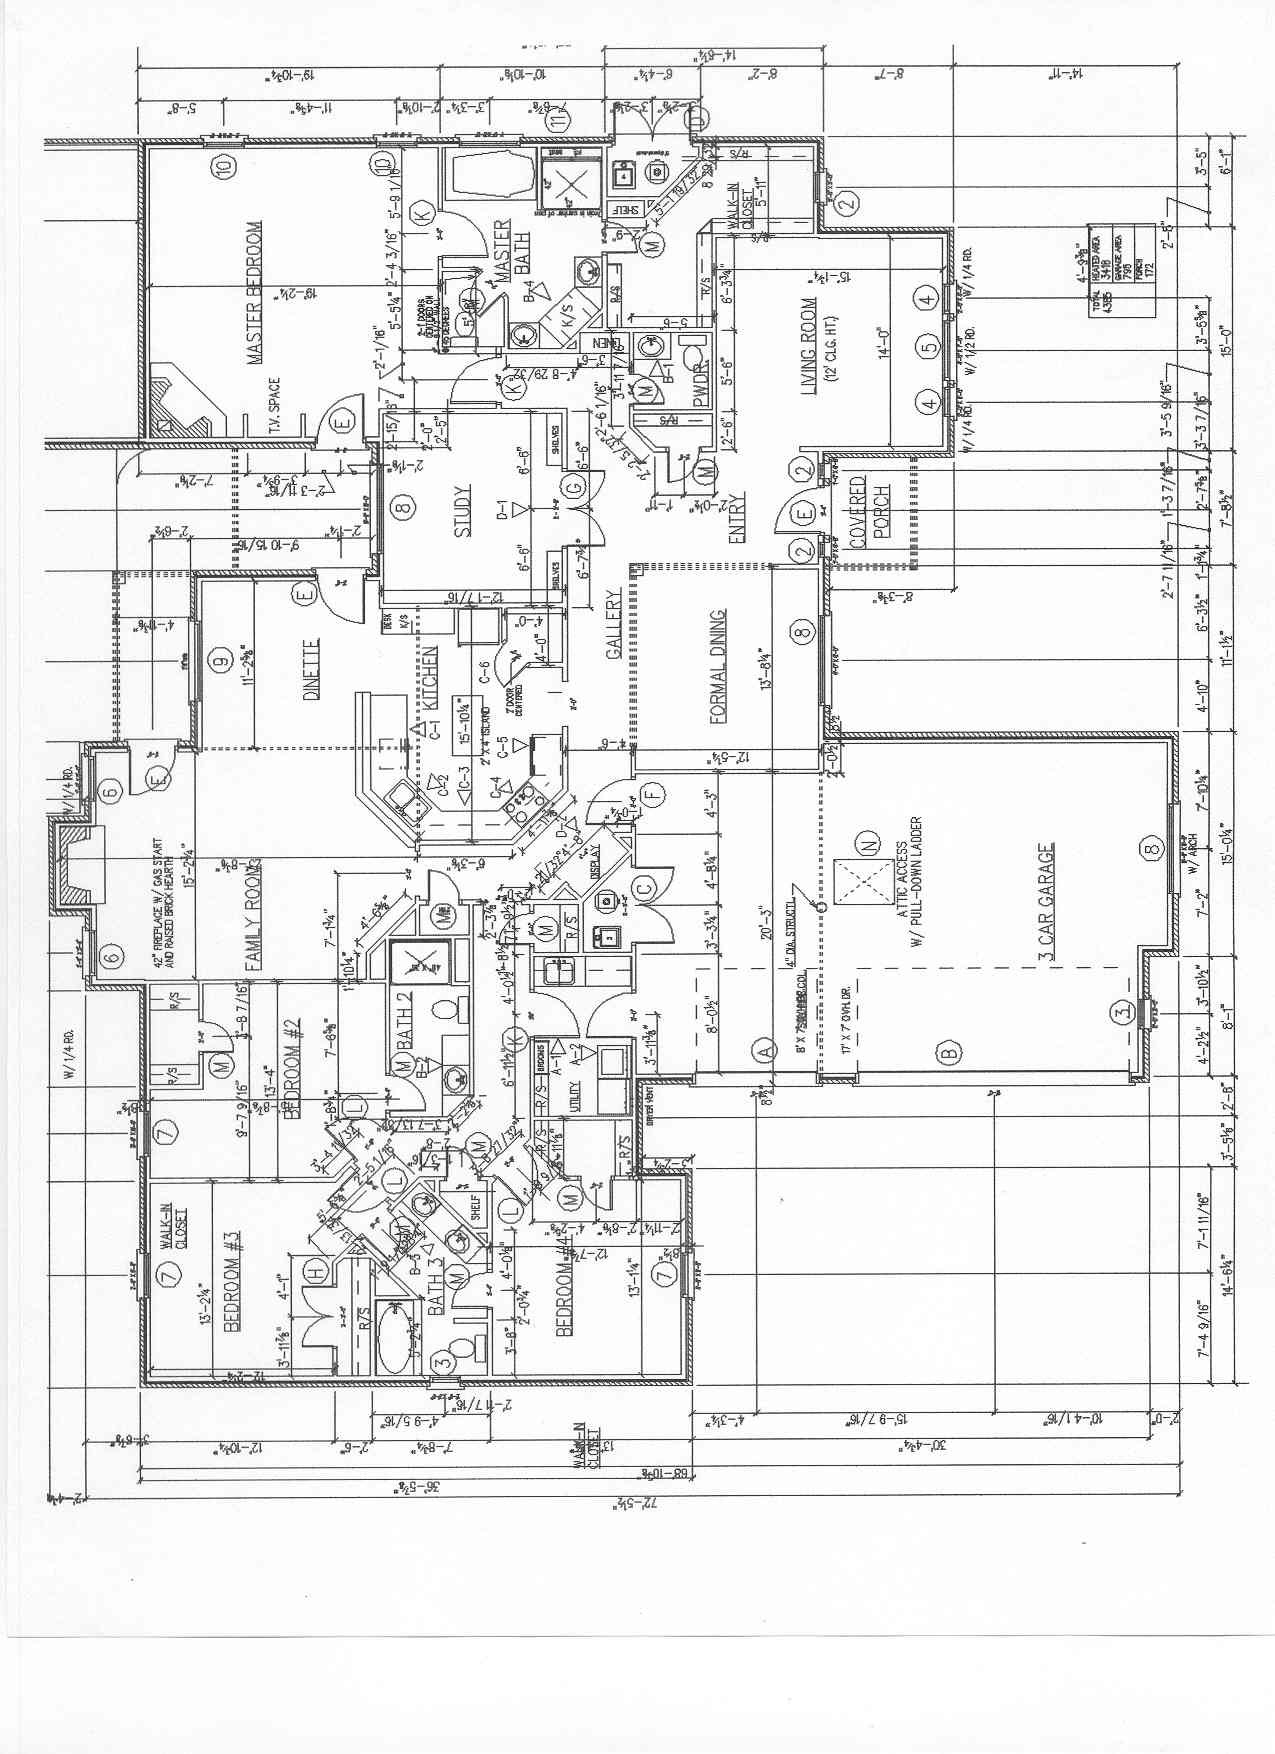 New Construction House Plans Awesome Drawing for Home Construction at Paintingvalley